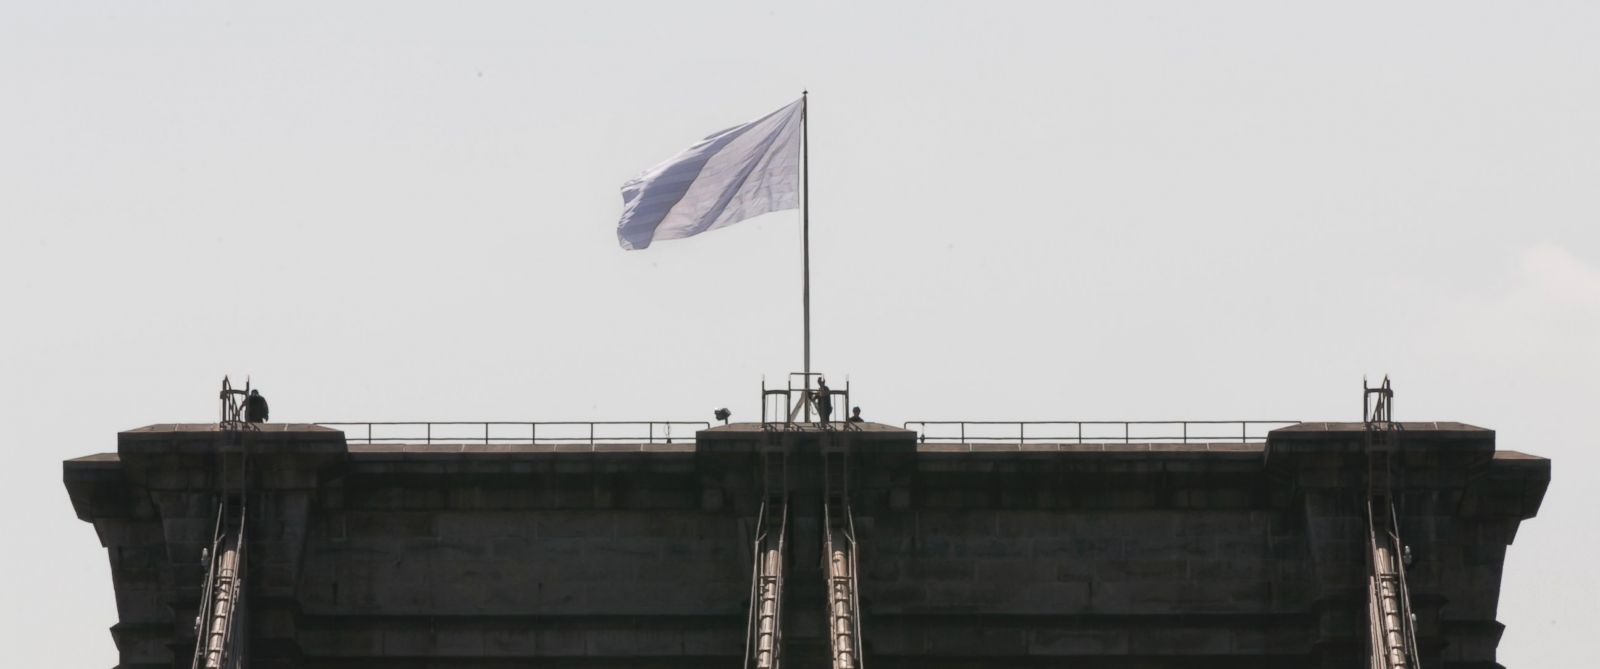 PHOTO: New York City police officers stand at the base of a white flag flying atop the west tower of the Brooklyn Bridge, July 22, 2014.